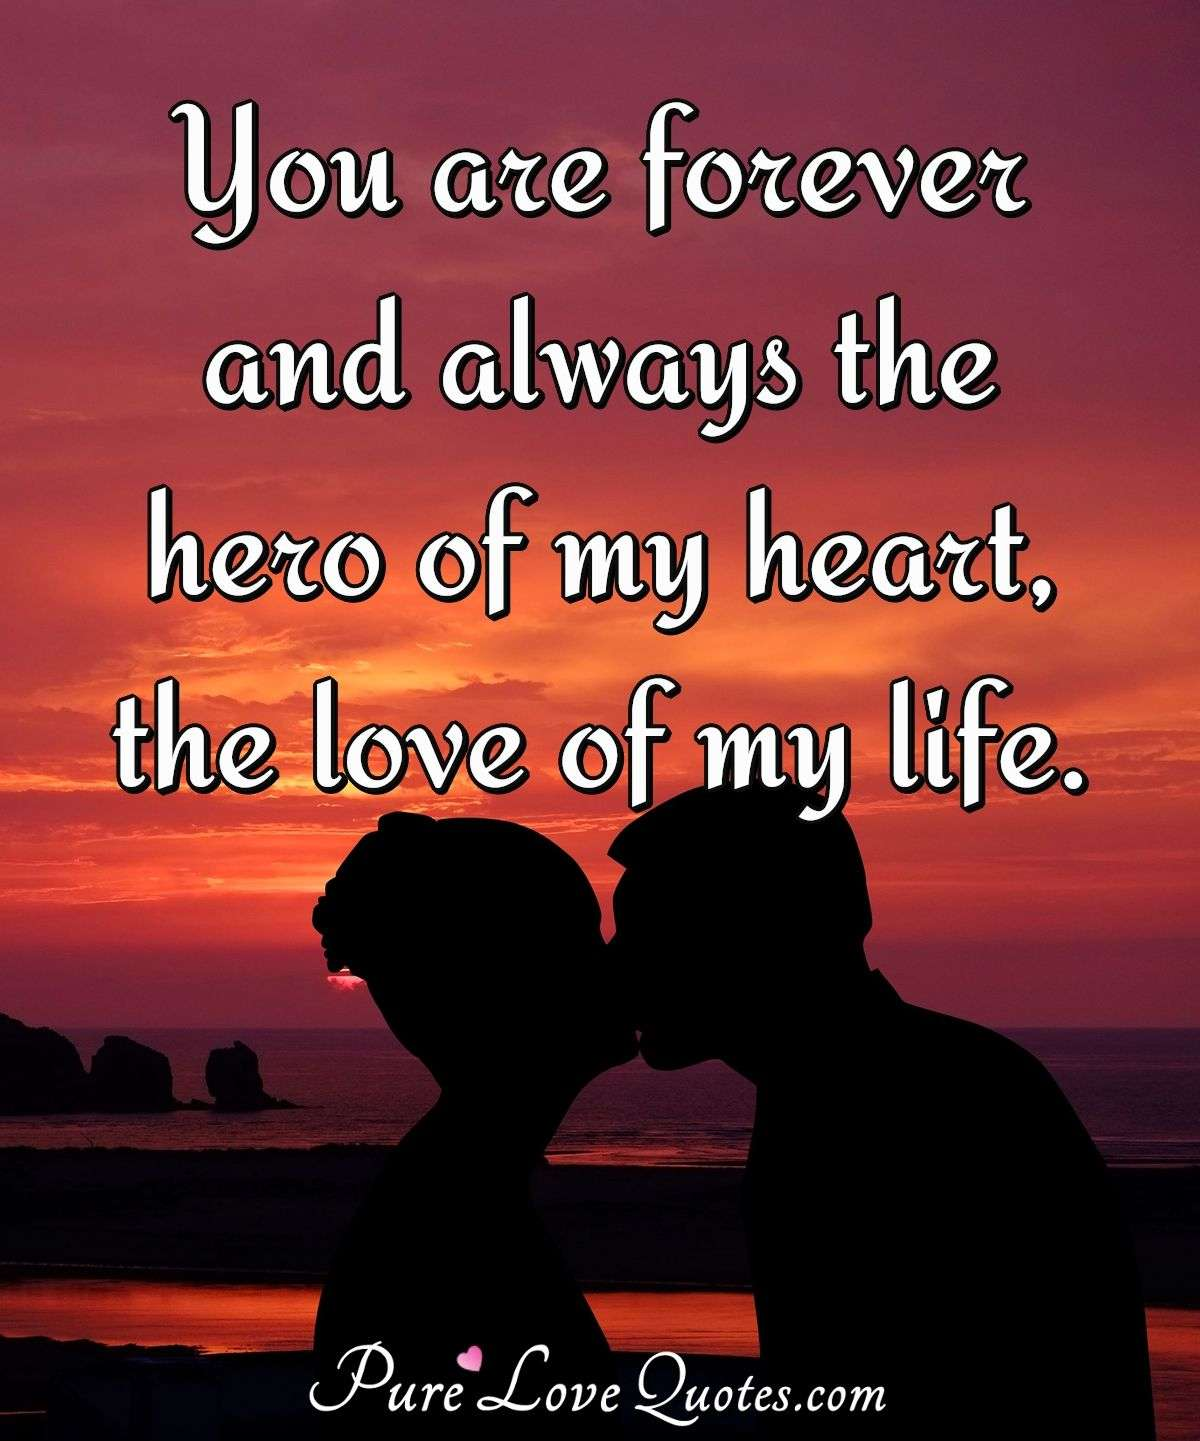 You are forever and always the hero of my heart, the love of my